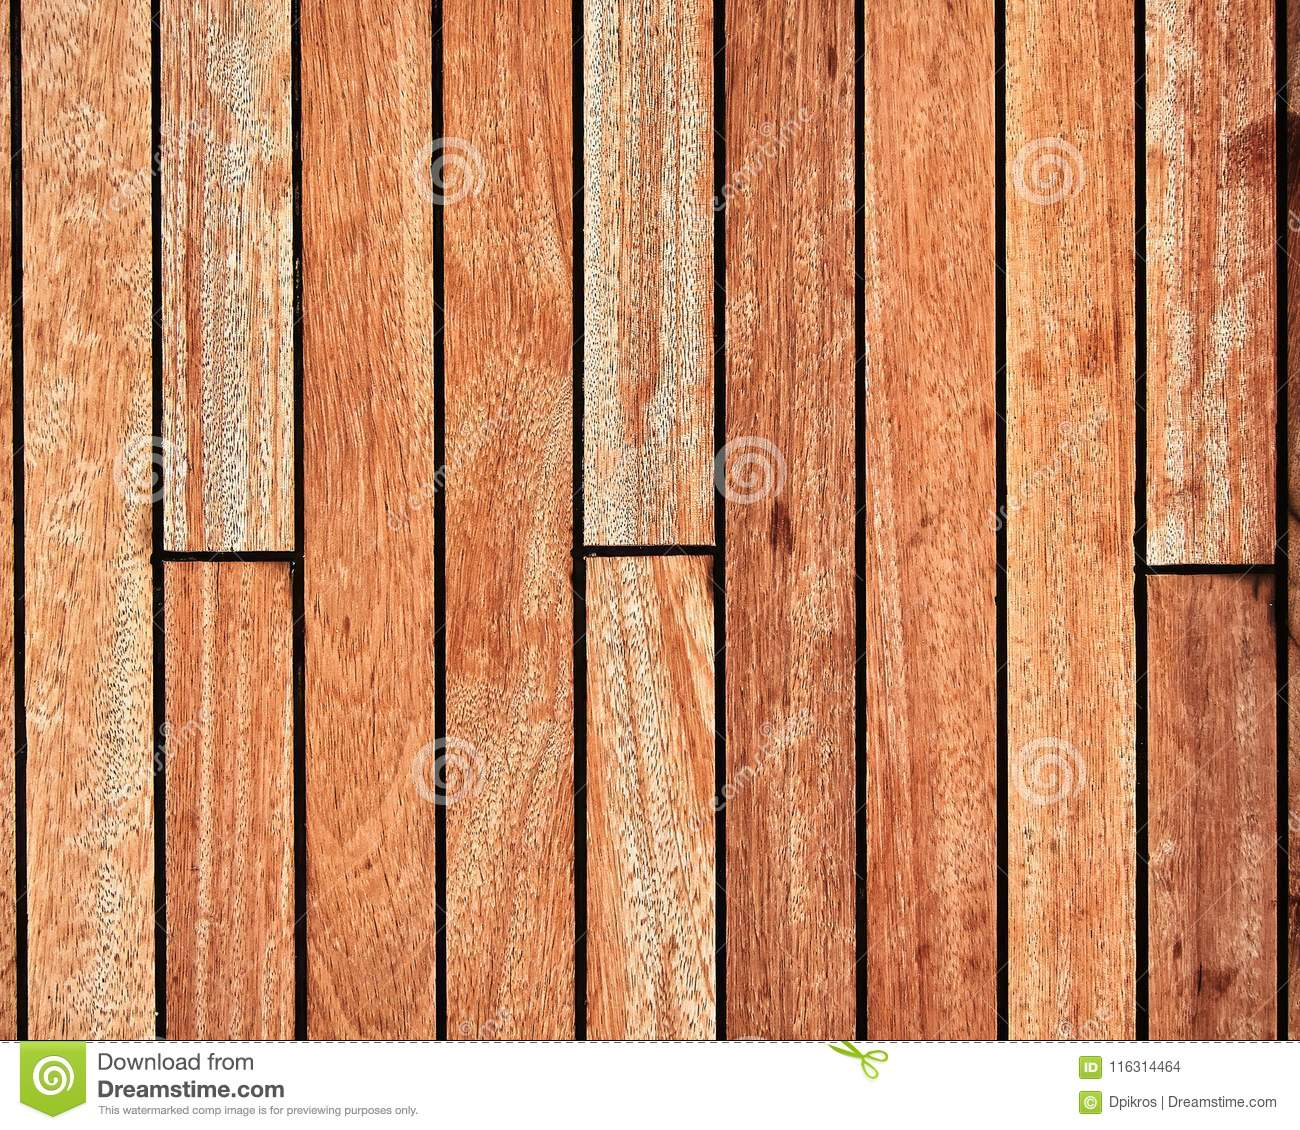 Teak wood deck, brown texture background